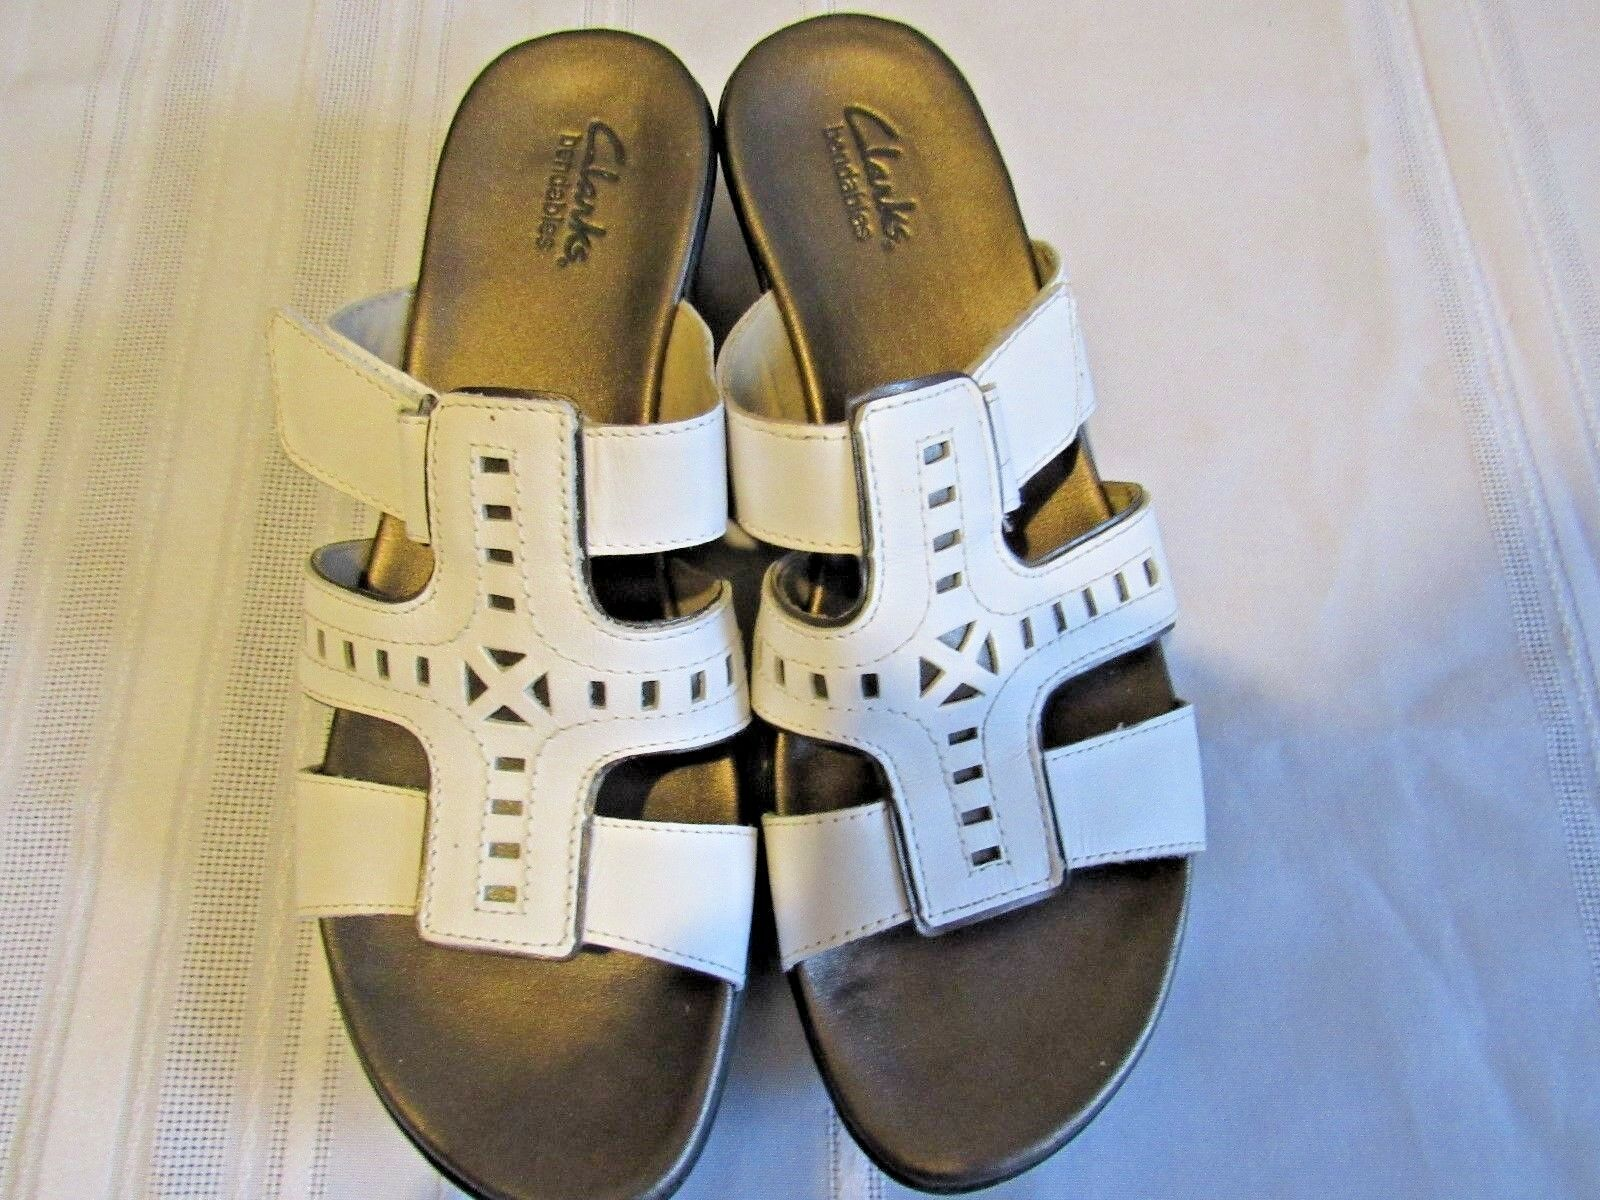 CLARKS WOMENS BENDABLES WHITE LEATHER MEDIUM SLIDE SANDALS, SIZE 8.5 MEDIUM LEATHER 27a60b